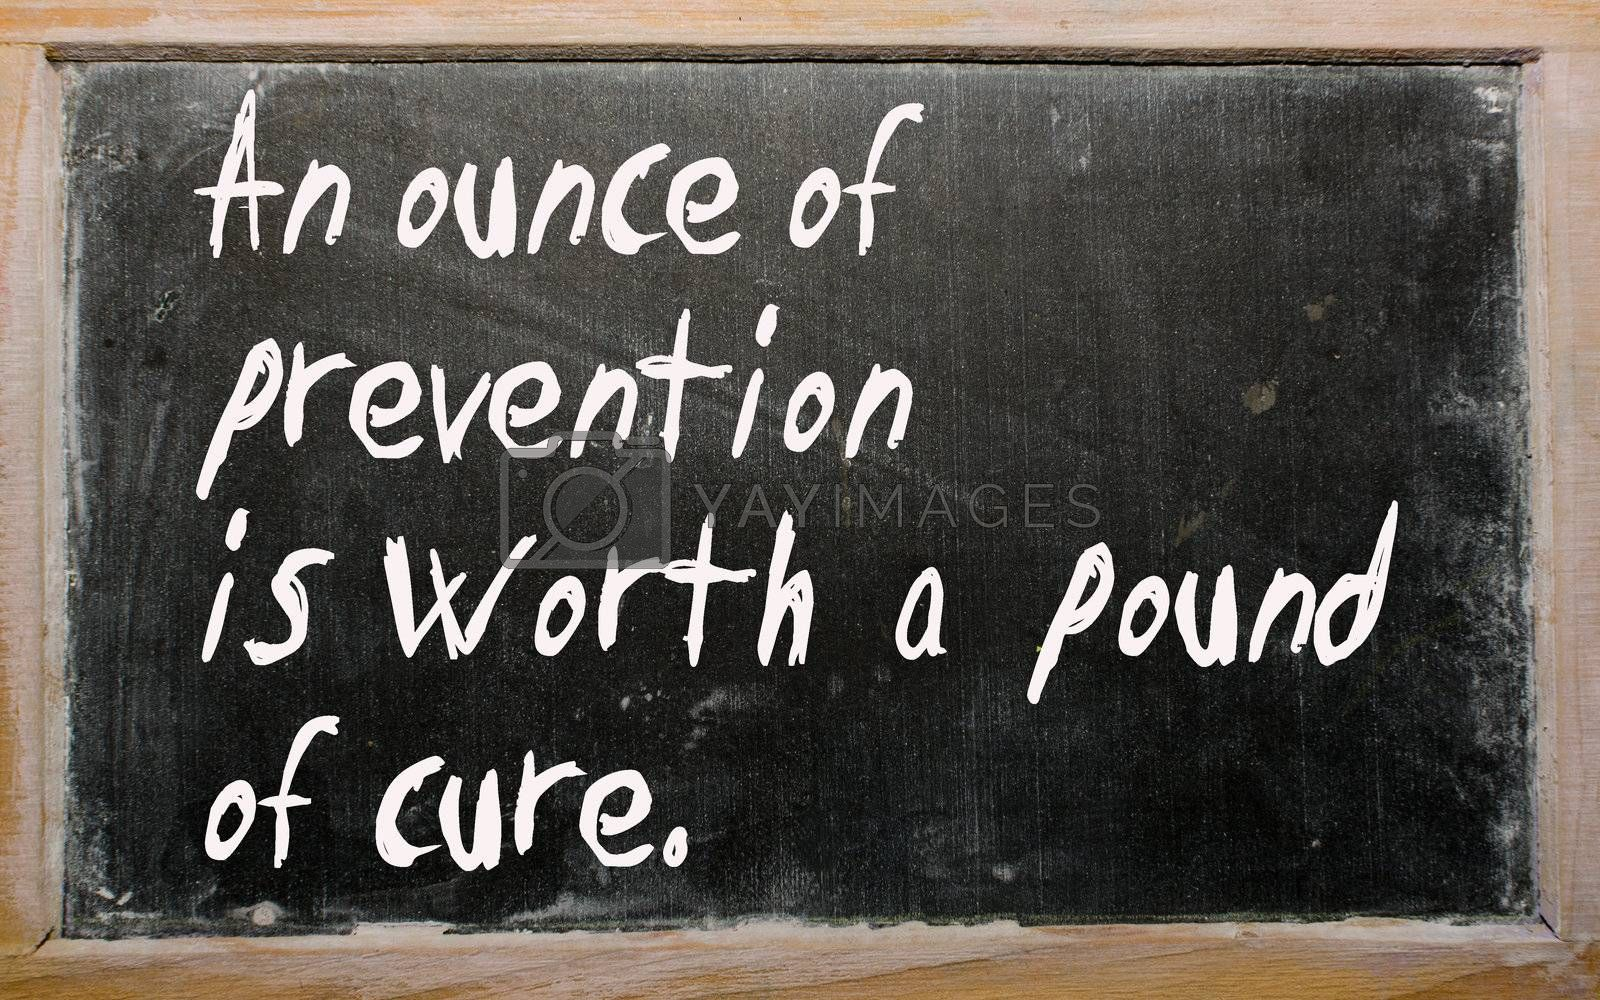 """Blackboard writings """"An ounce of prevention is worth a pound of cure"""""""